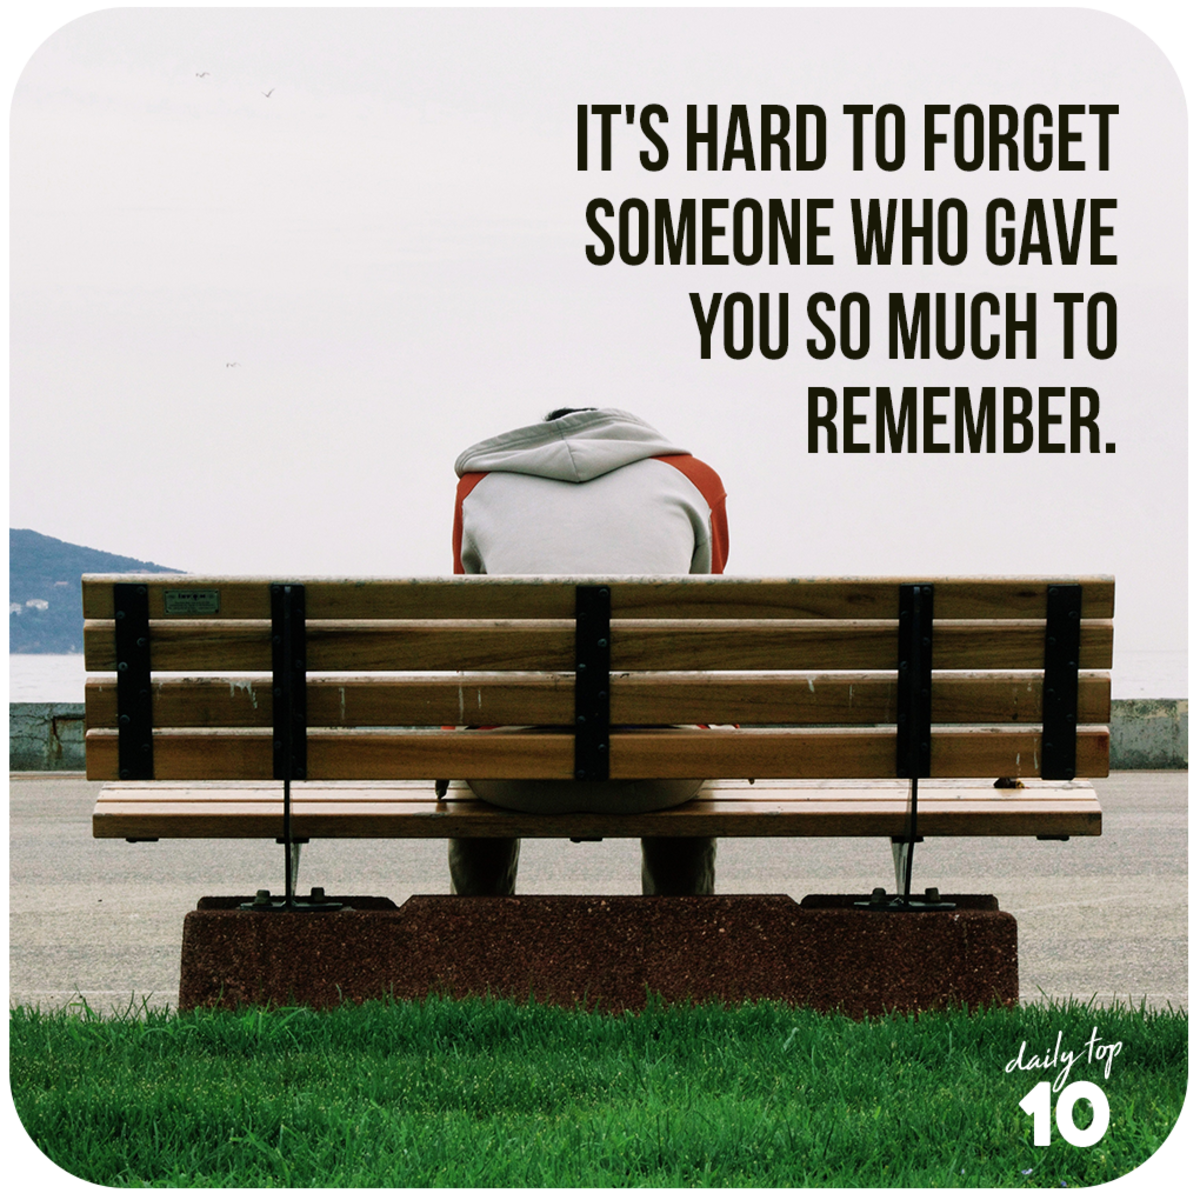 It's hard to forget.